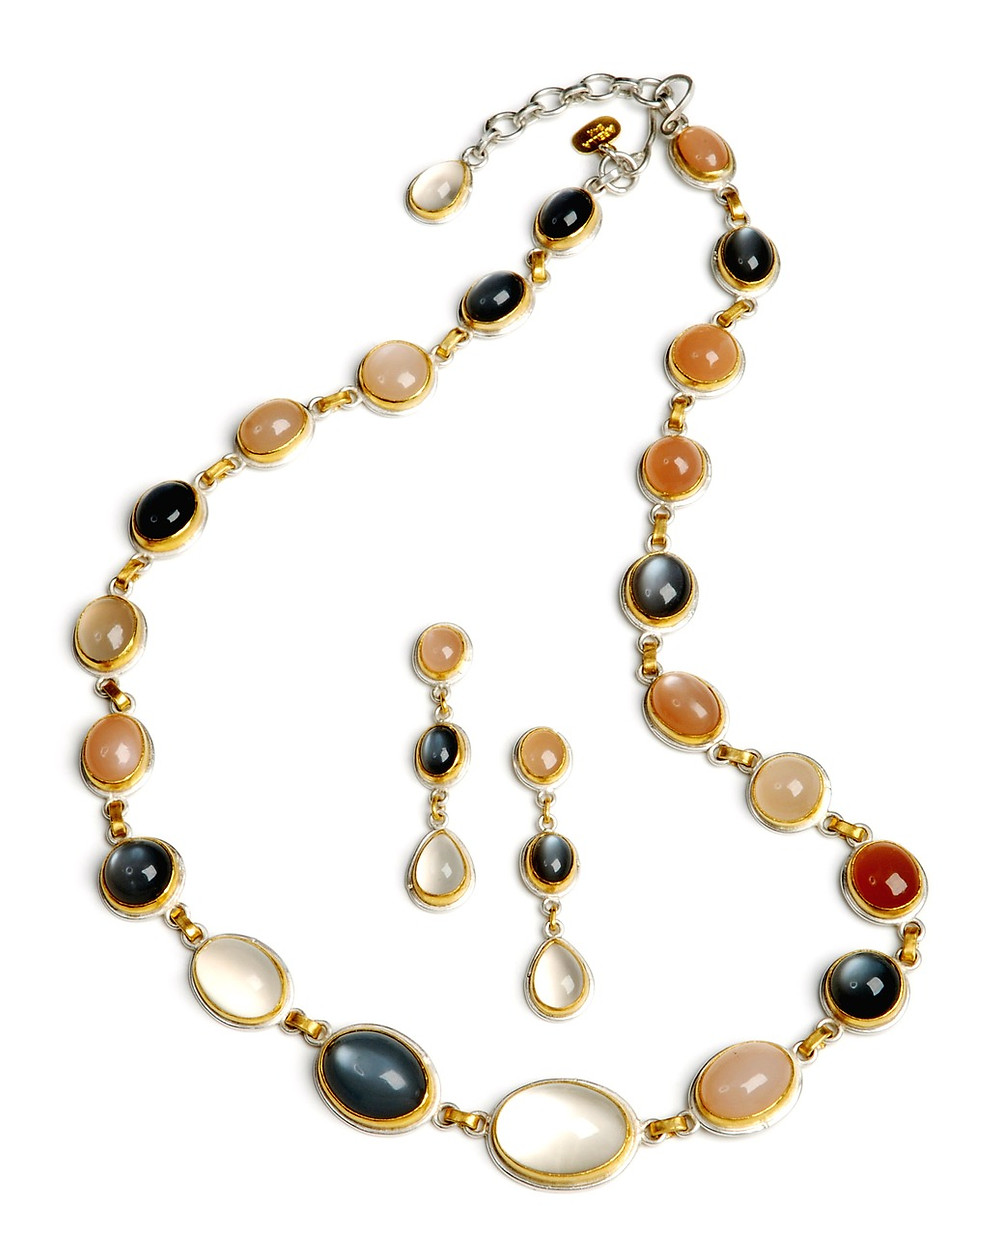 Necklace Set with Colourful Round and Oval Cabochon Gemstones